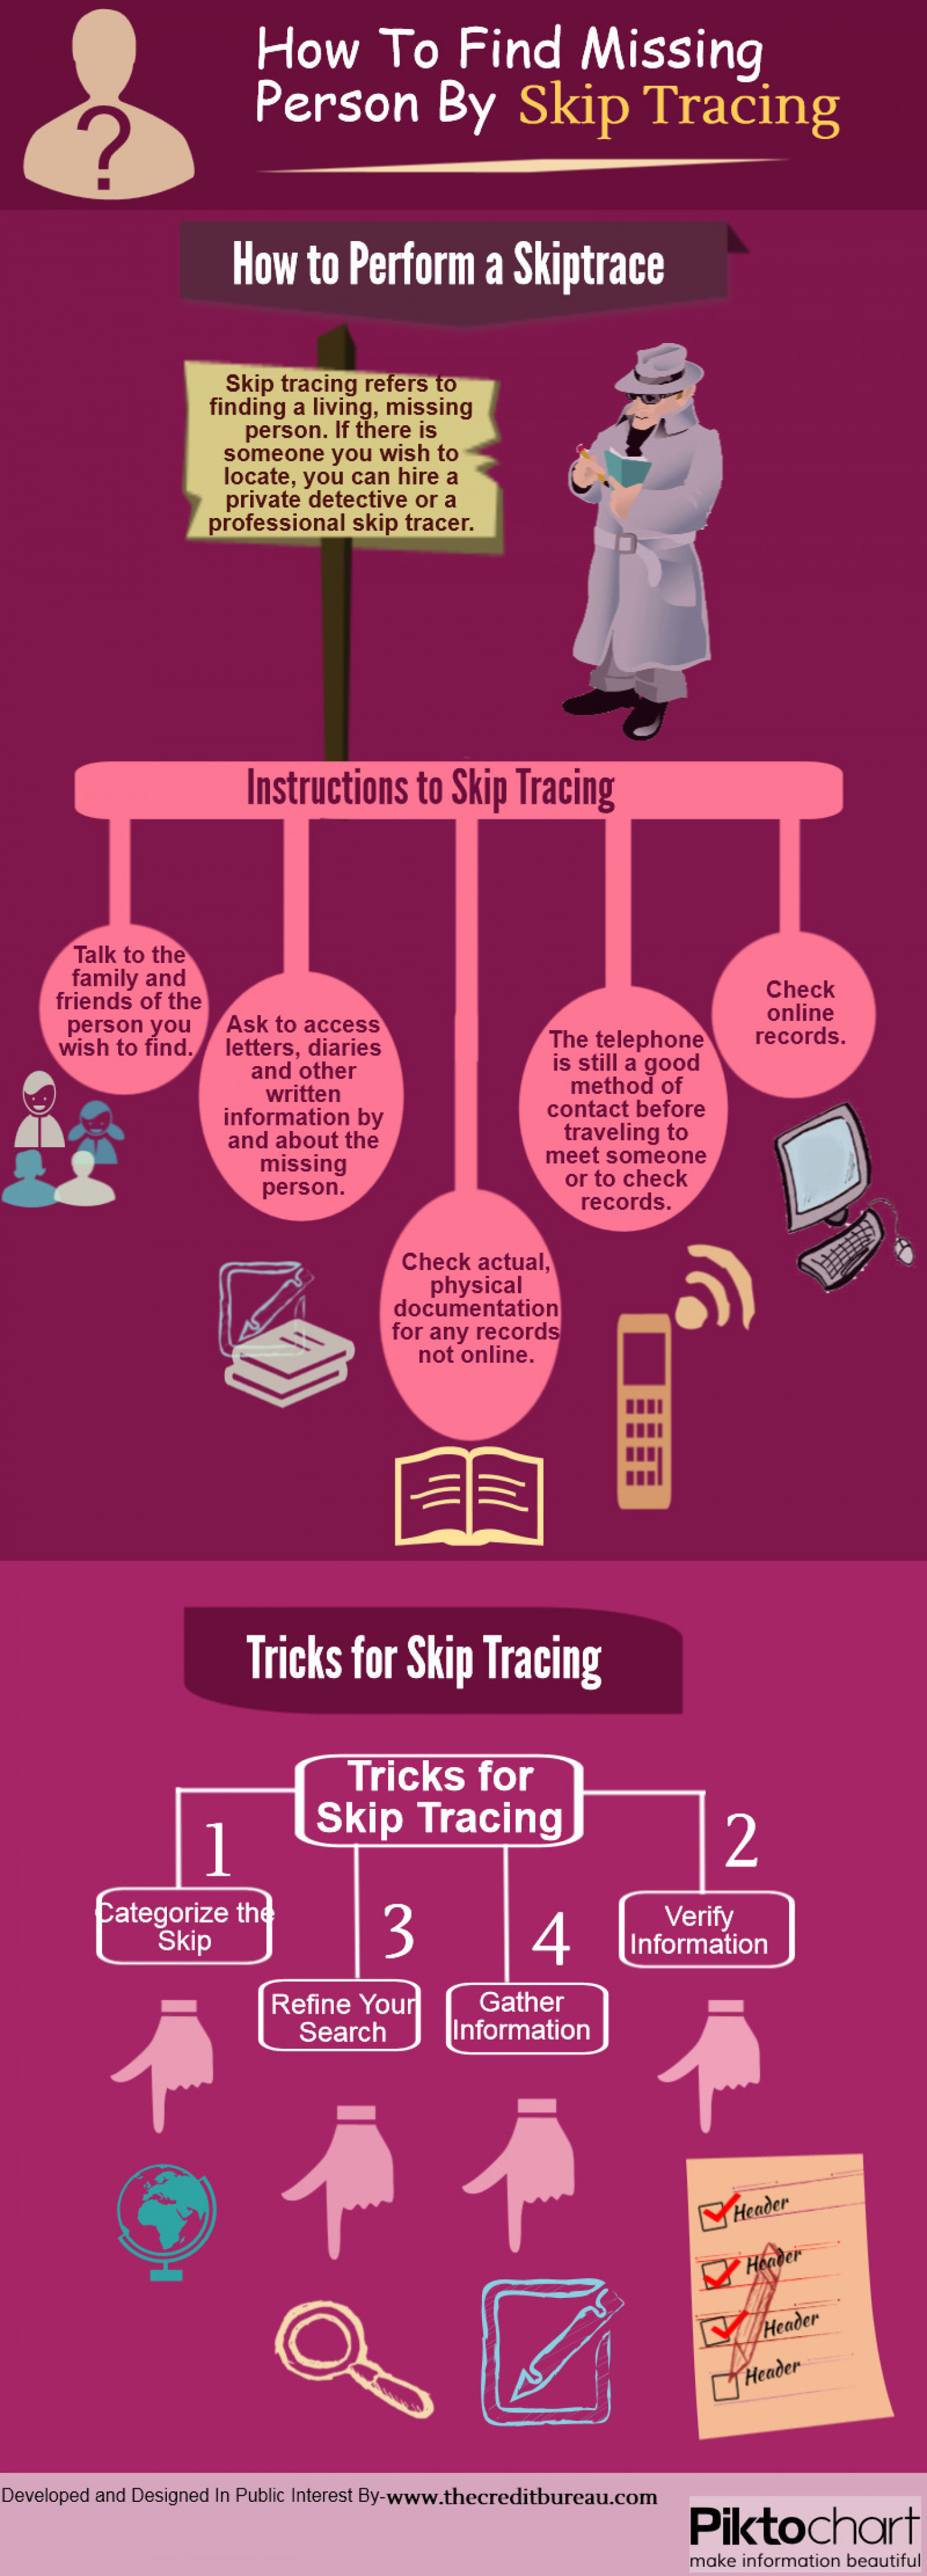 How To Find Missing Person By Skip Tracing Infographic